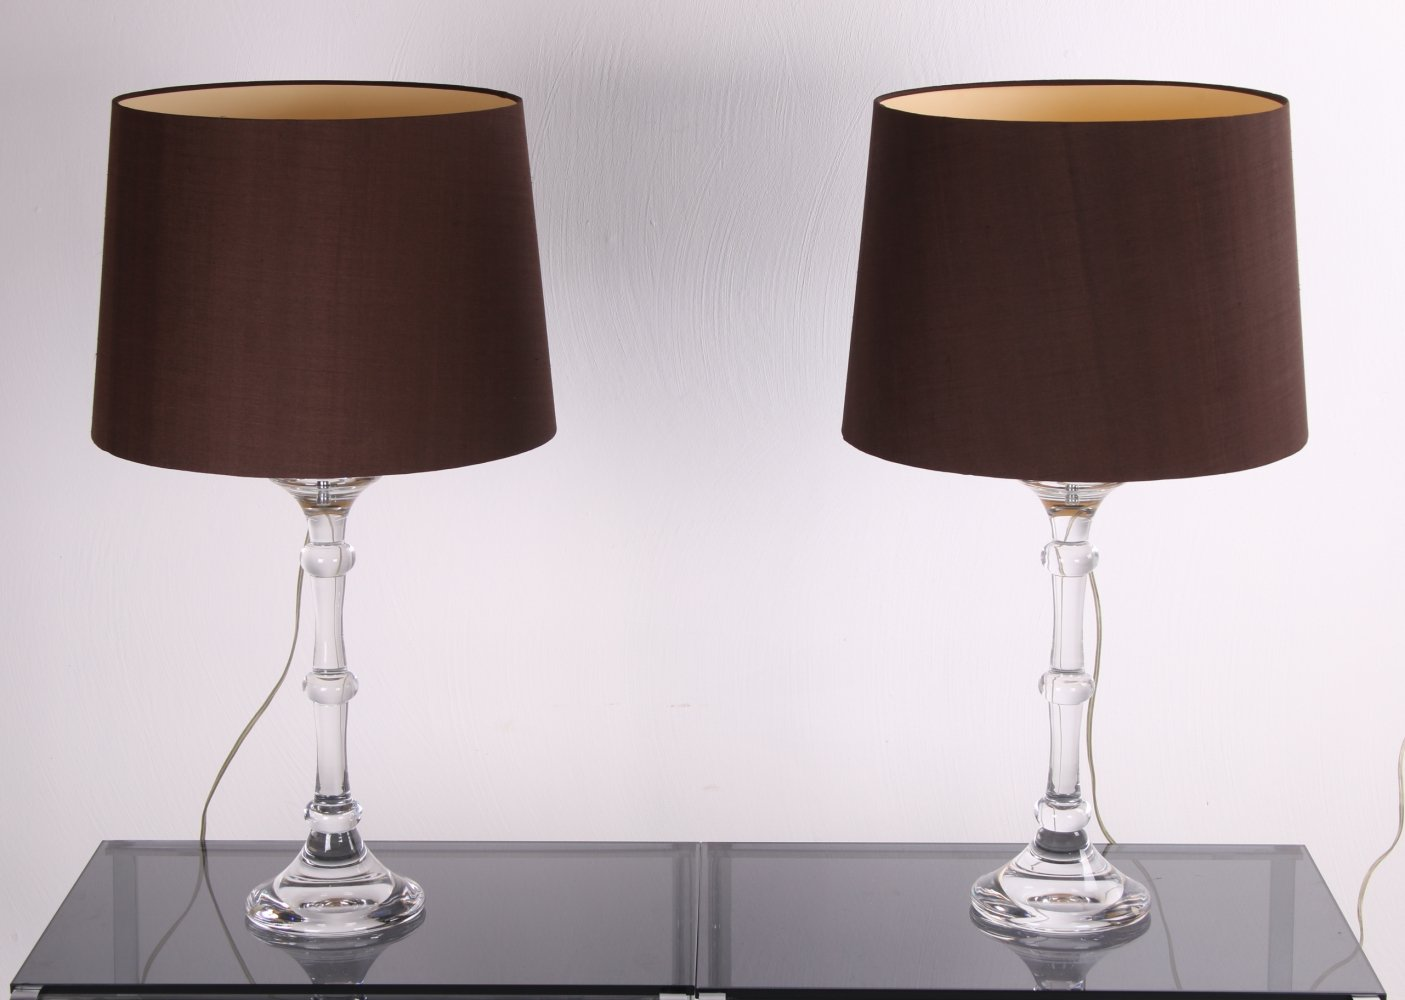 Set of German Glass Table Lamps by Ingo Maurer for Design M, 1970s